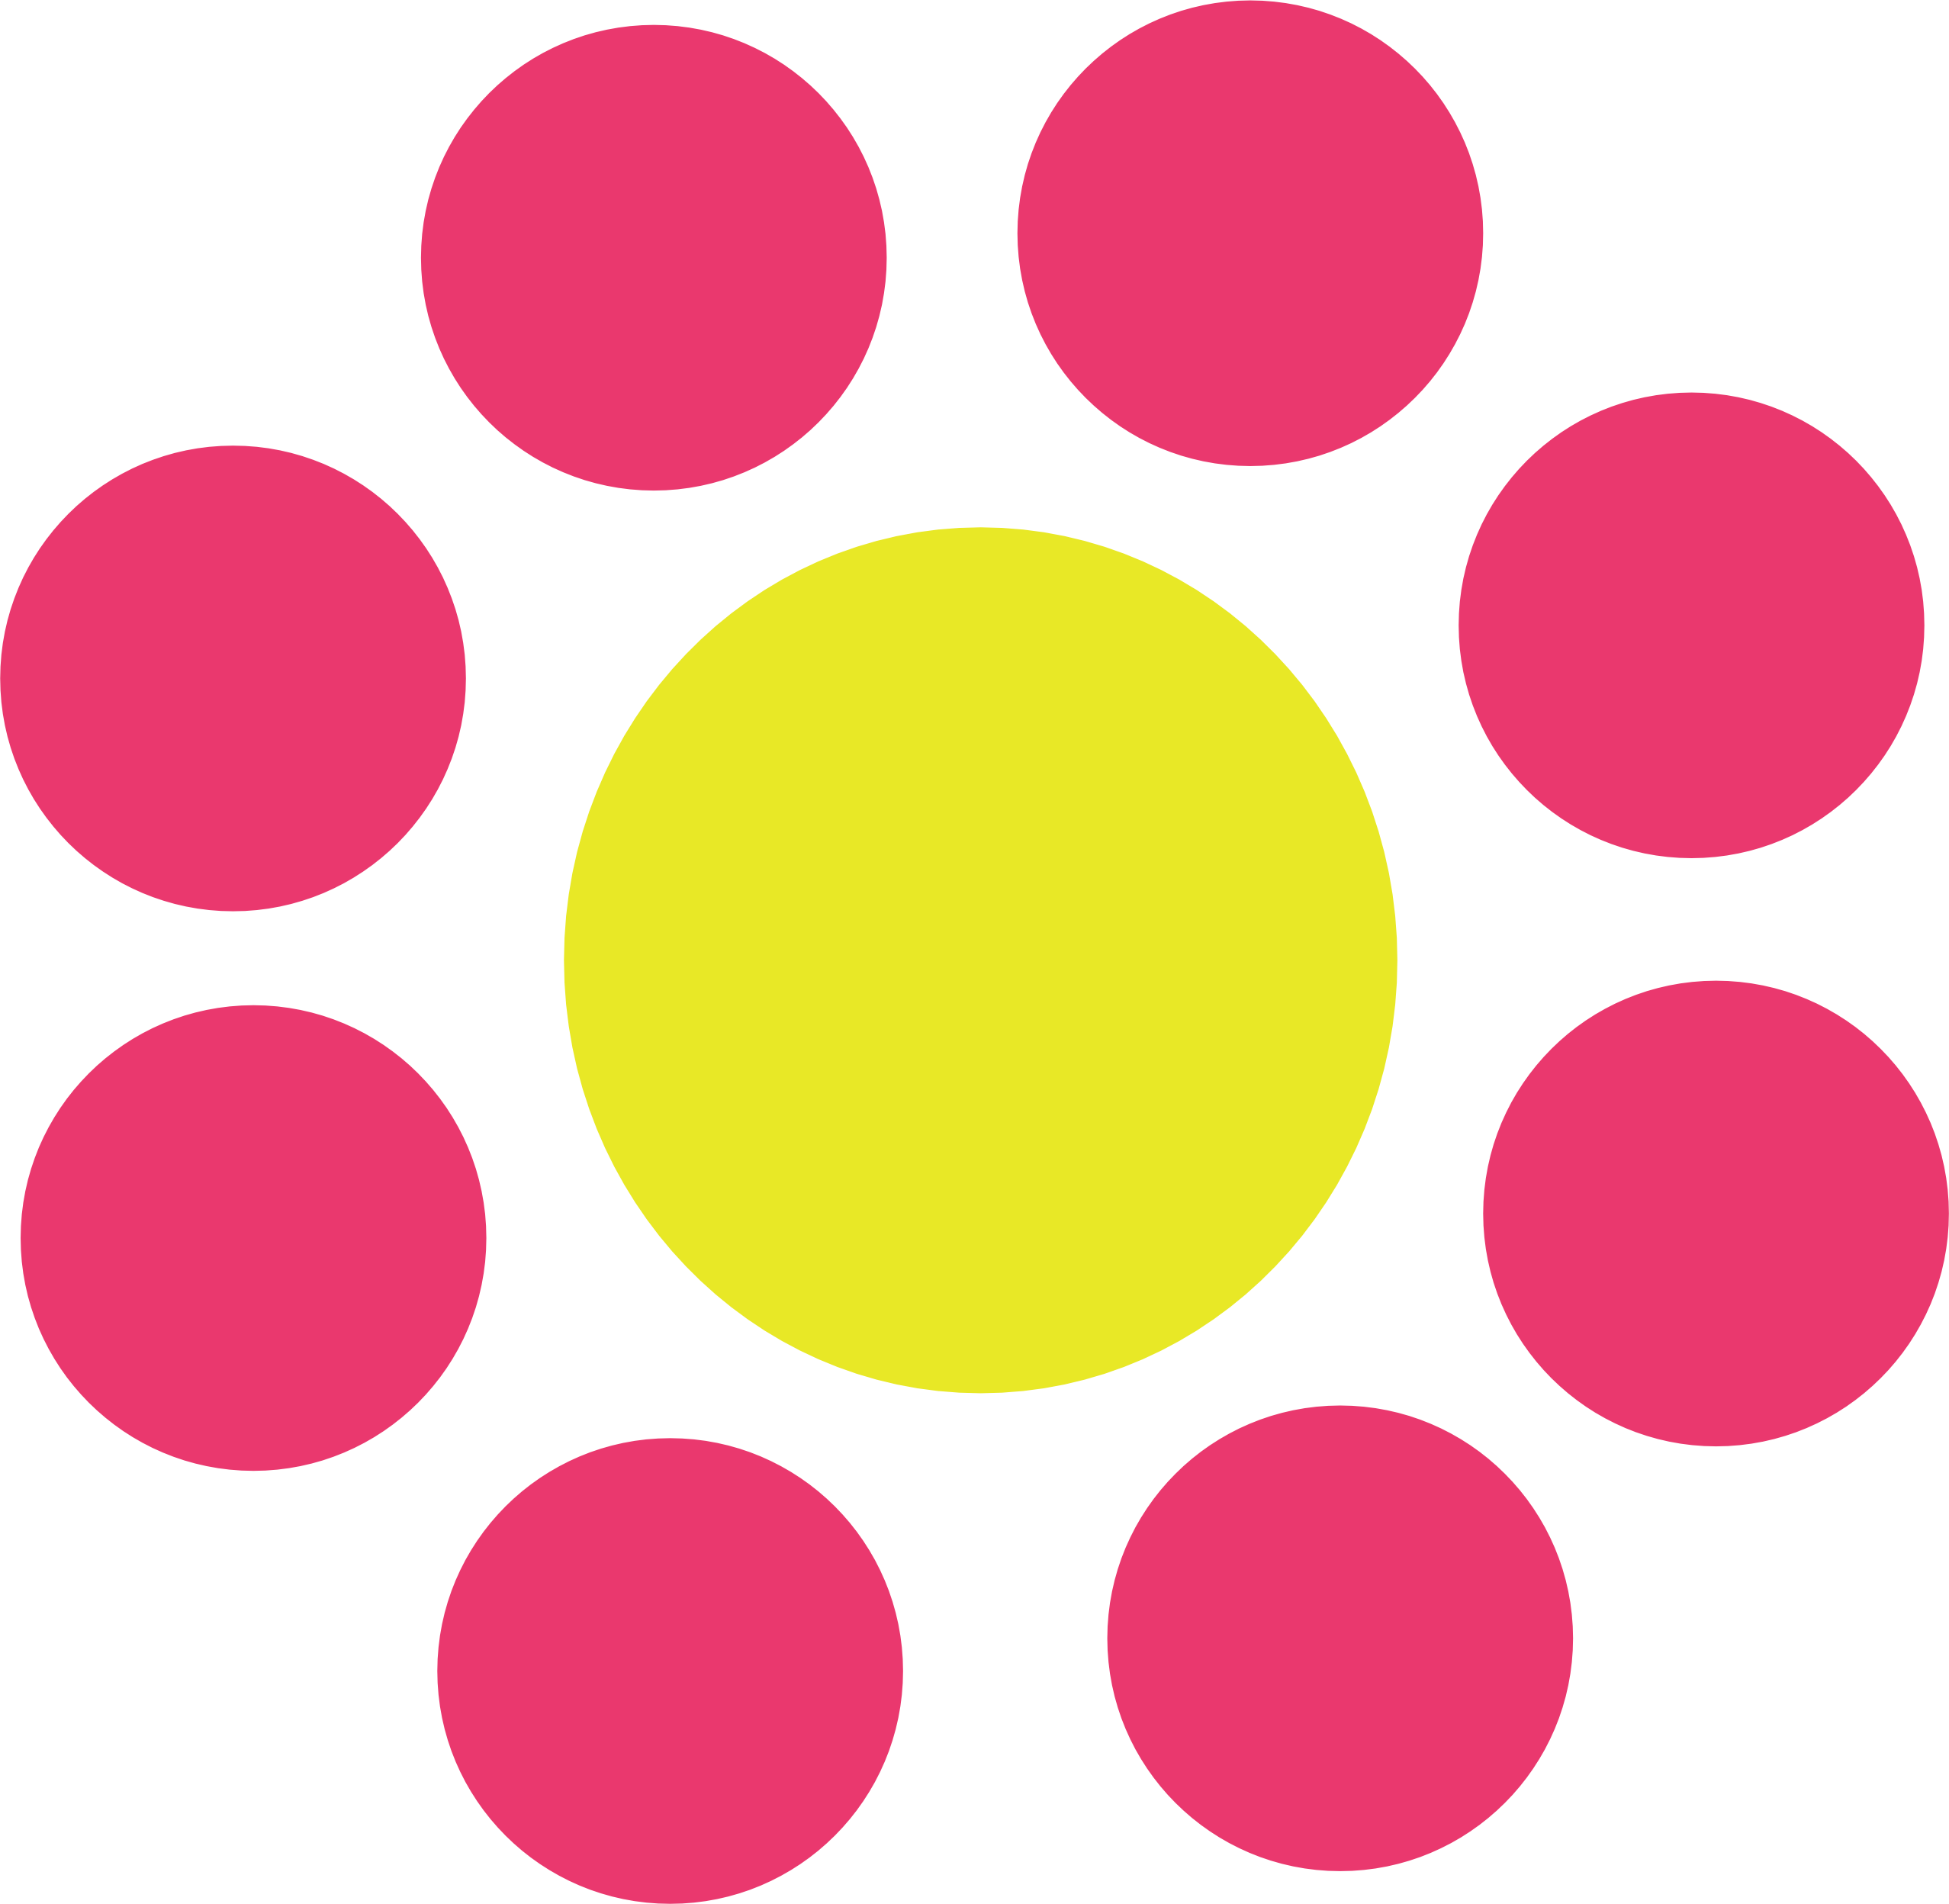 Dots clipart colored circle Images Free Free Clipart Clipart